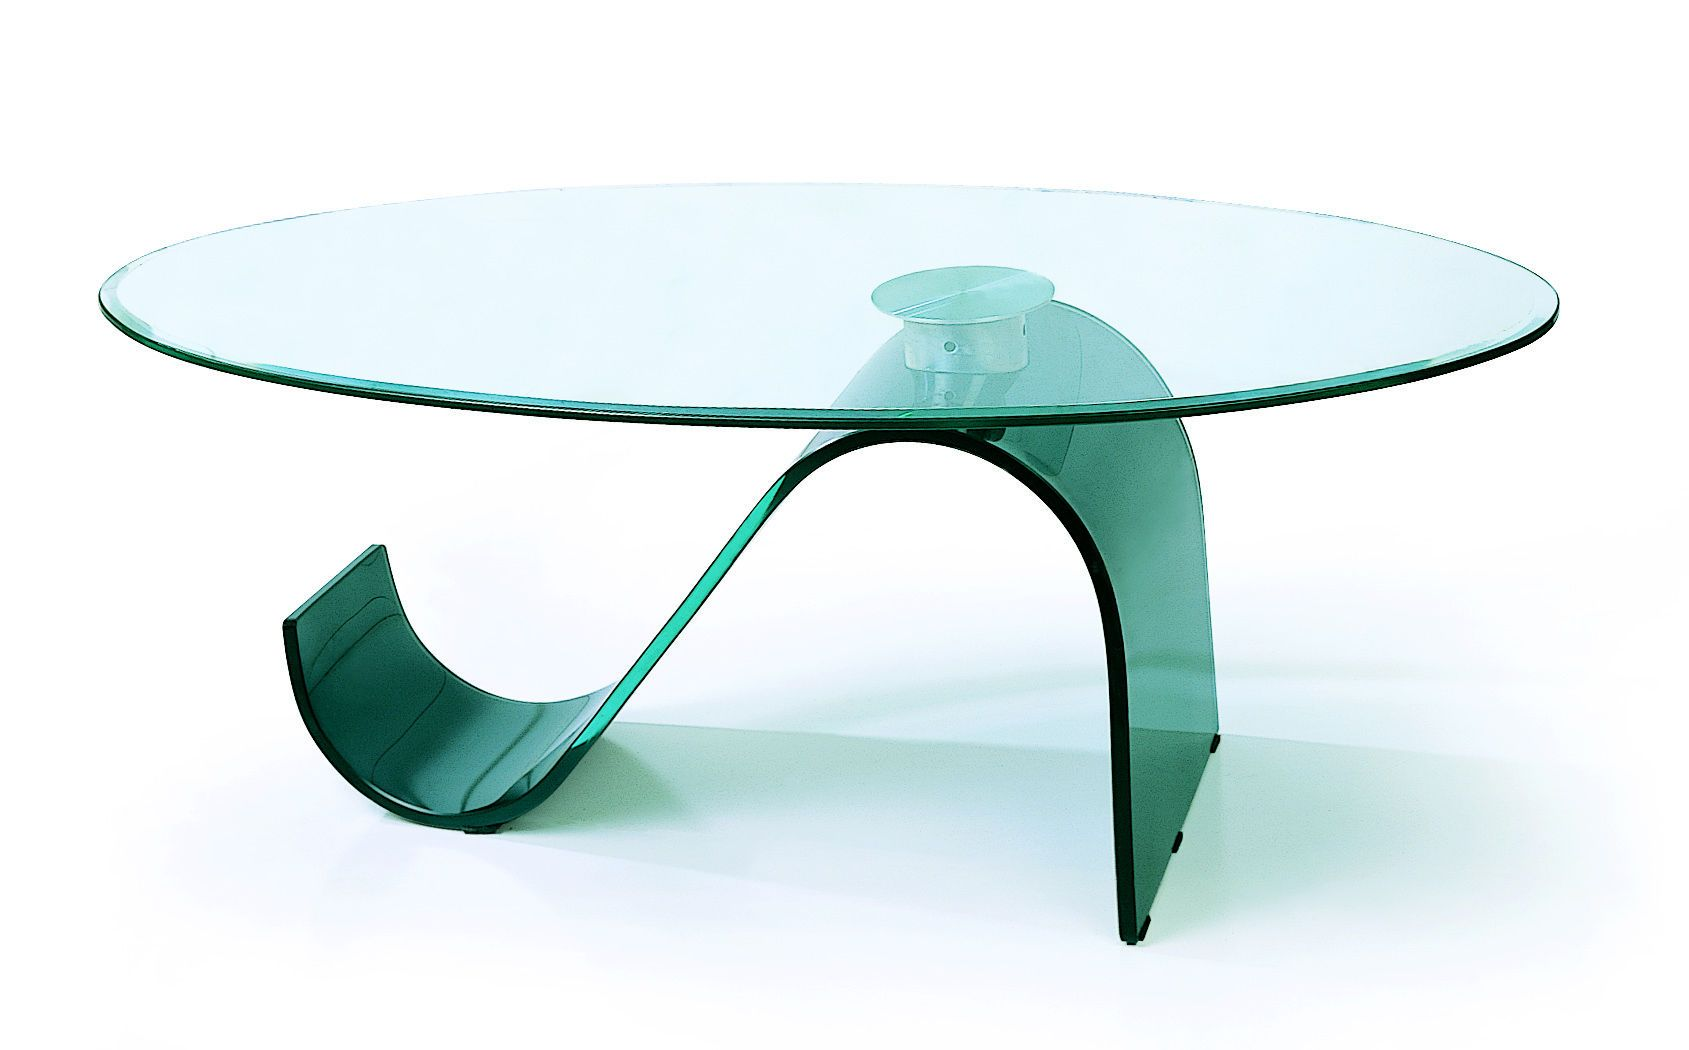 Bhc22 Coffee Table C22 Beverly Hills Furniture Coffee Tables Coffee Table Glass Coffee Table Oval Glass Coffee Table [ 1050 x 1689 Pixel ]